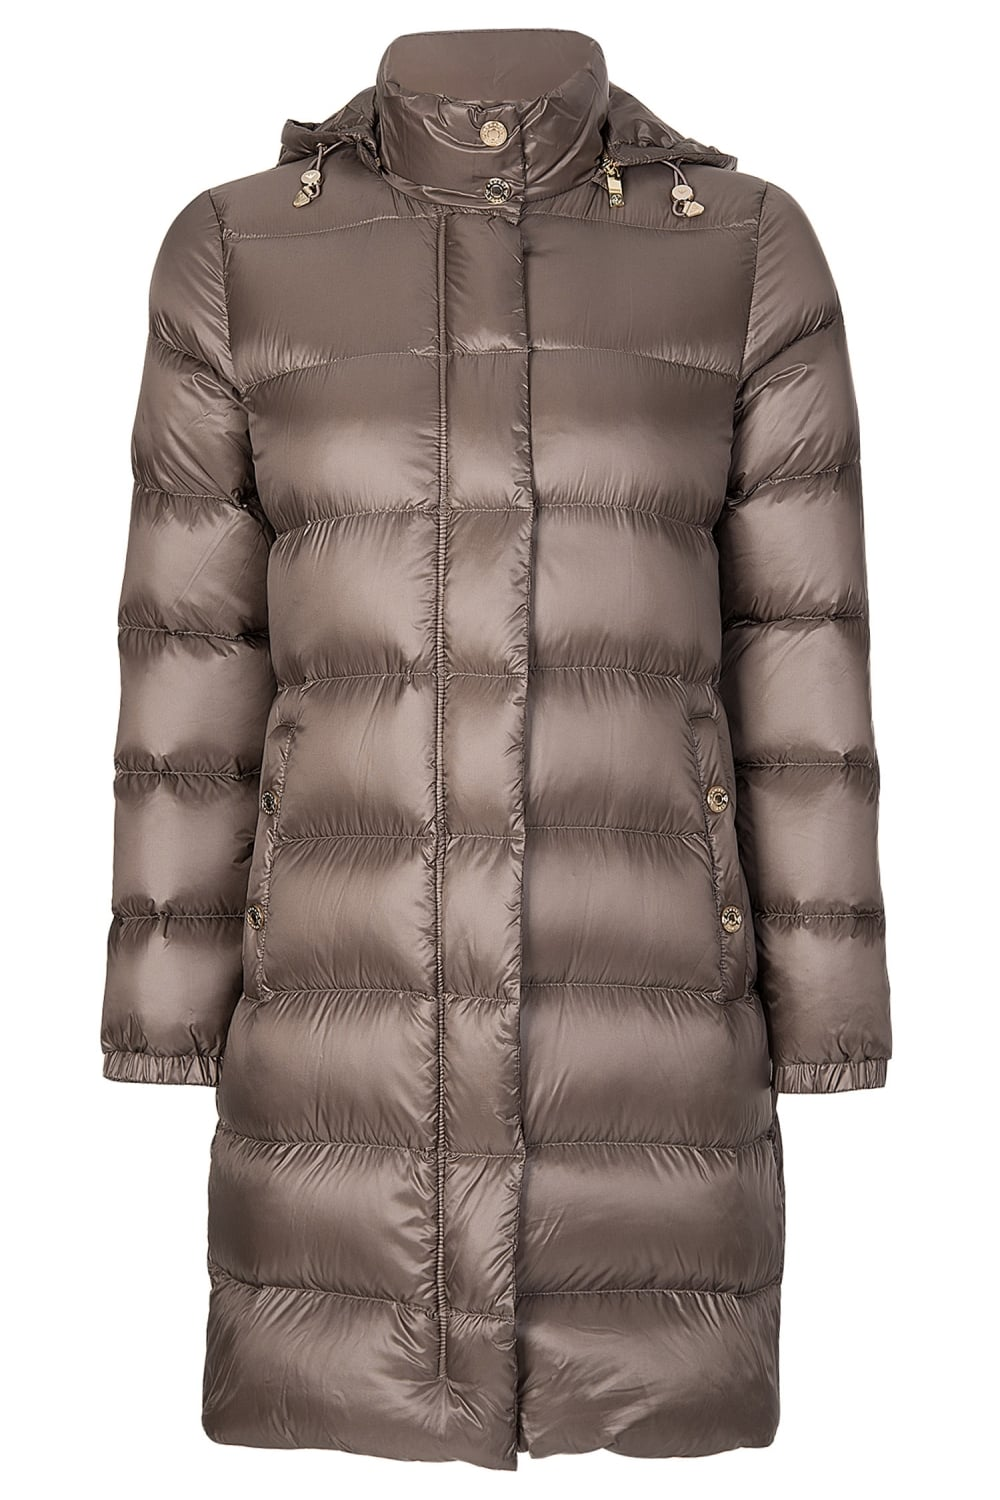 a2ca0cb66770 Armani Jeans Womens Long Down Puffer Coat Taupe